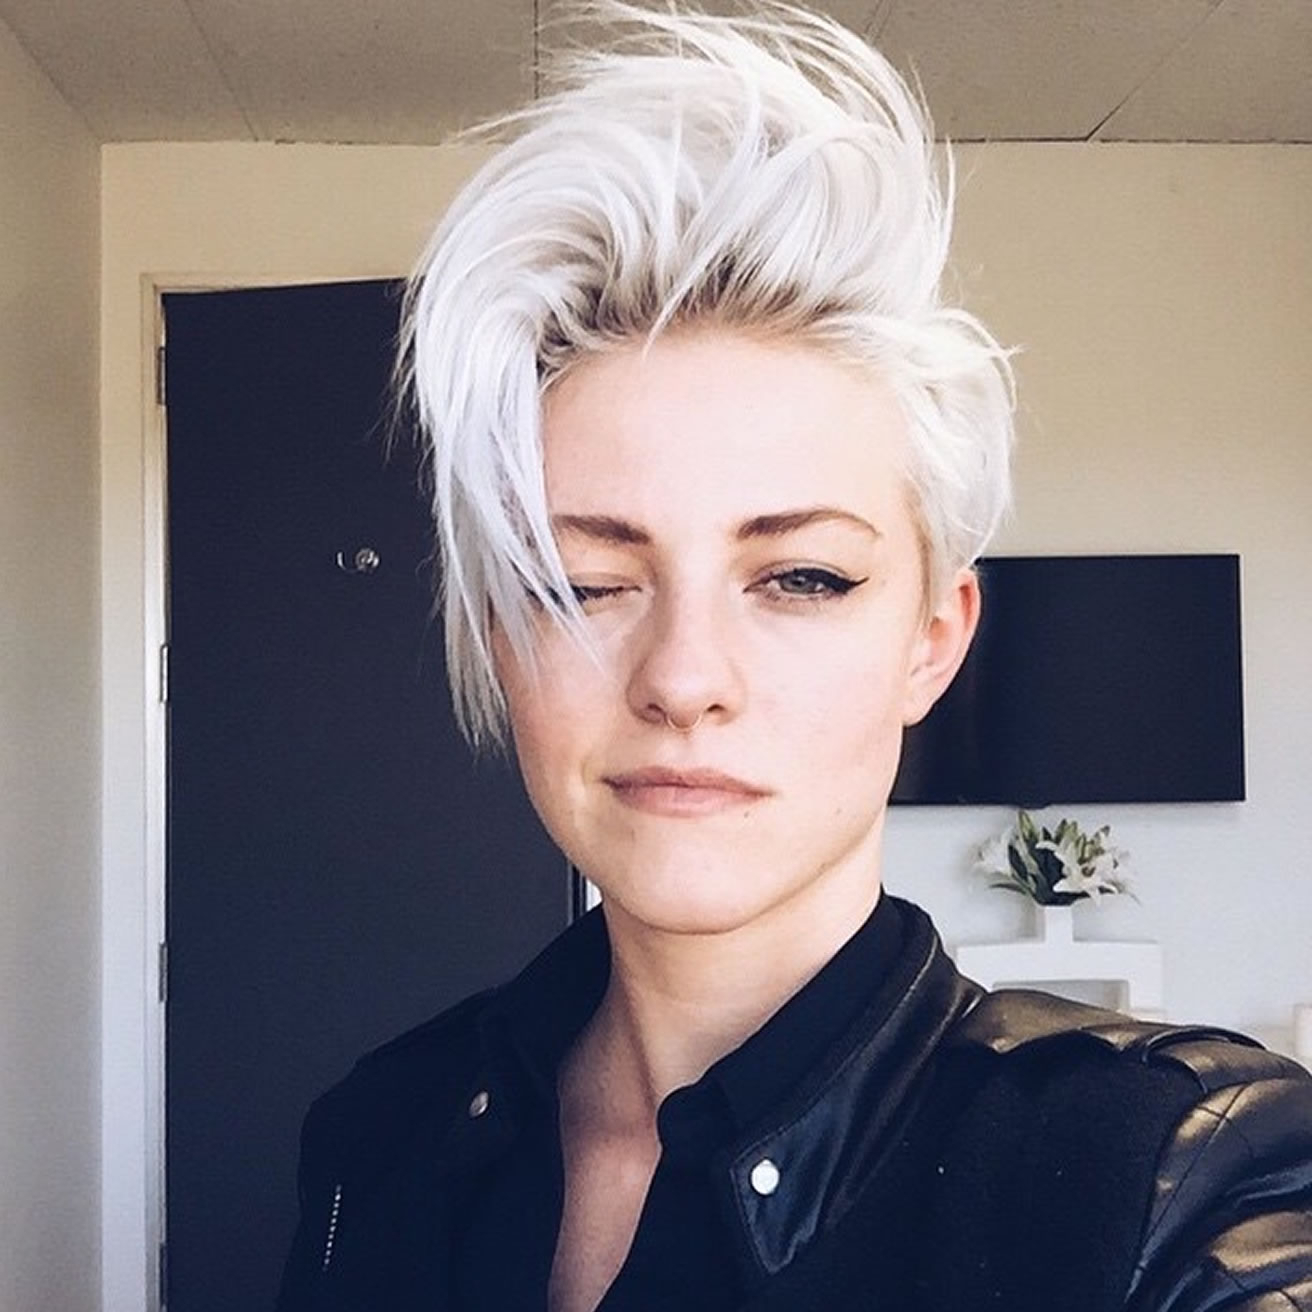 30 Best Asymmetric Short Haircuts For Women Of All Time – Page 2 With Regard To Symmetrical Short Haircuts (View 12 of 25)